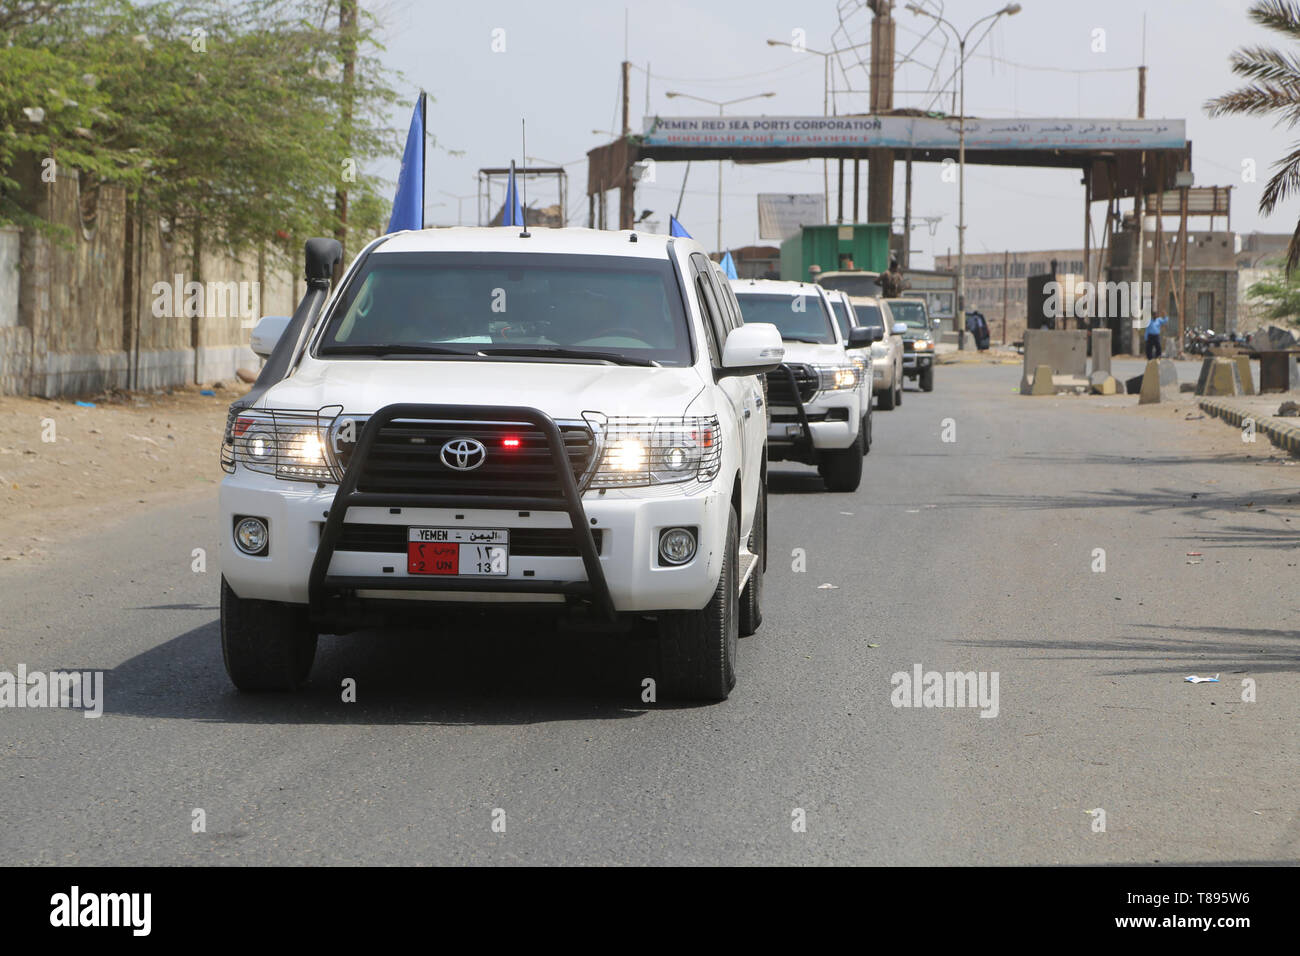 (190511) -- HODEIDAH (YEMEN), May 11, 2019 (Xinhua) -- UN vehicles are seen on their way from the Hodeidah main port to Salif port, in Hodeidah, Yemen, on May 11, 2019. Yemen's Houthi rebels began on Saturday withdrawal from two ports of Hodeidah Province, eyewitnesses said. (Xinhua) Stock Photo